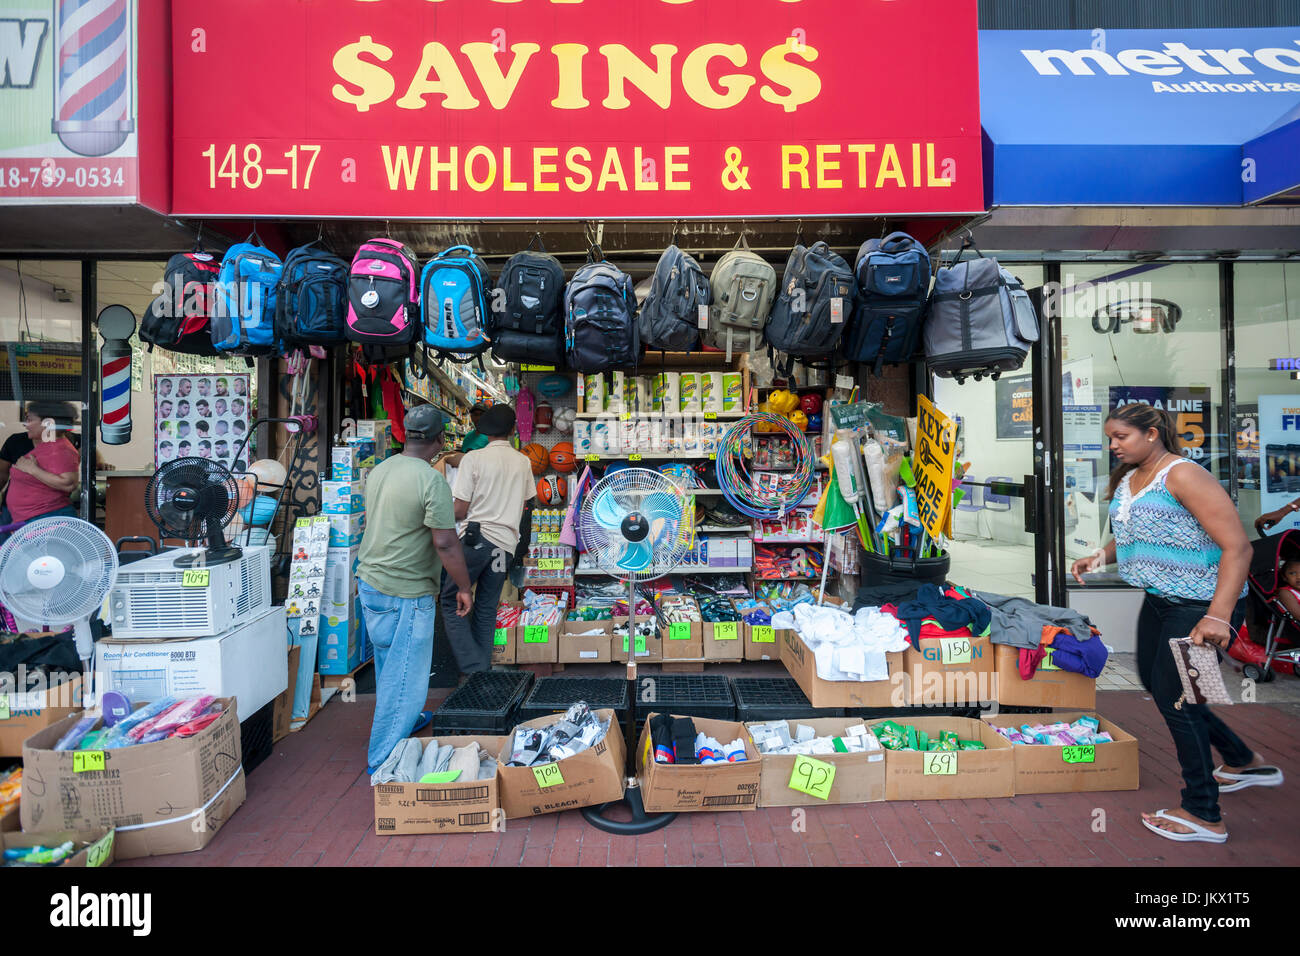 99 Cent Store In The CBD Of Jamaica Avenue And Sutphin Boulevard Neighborhood Queens New York On Tuesday July 18 2017